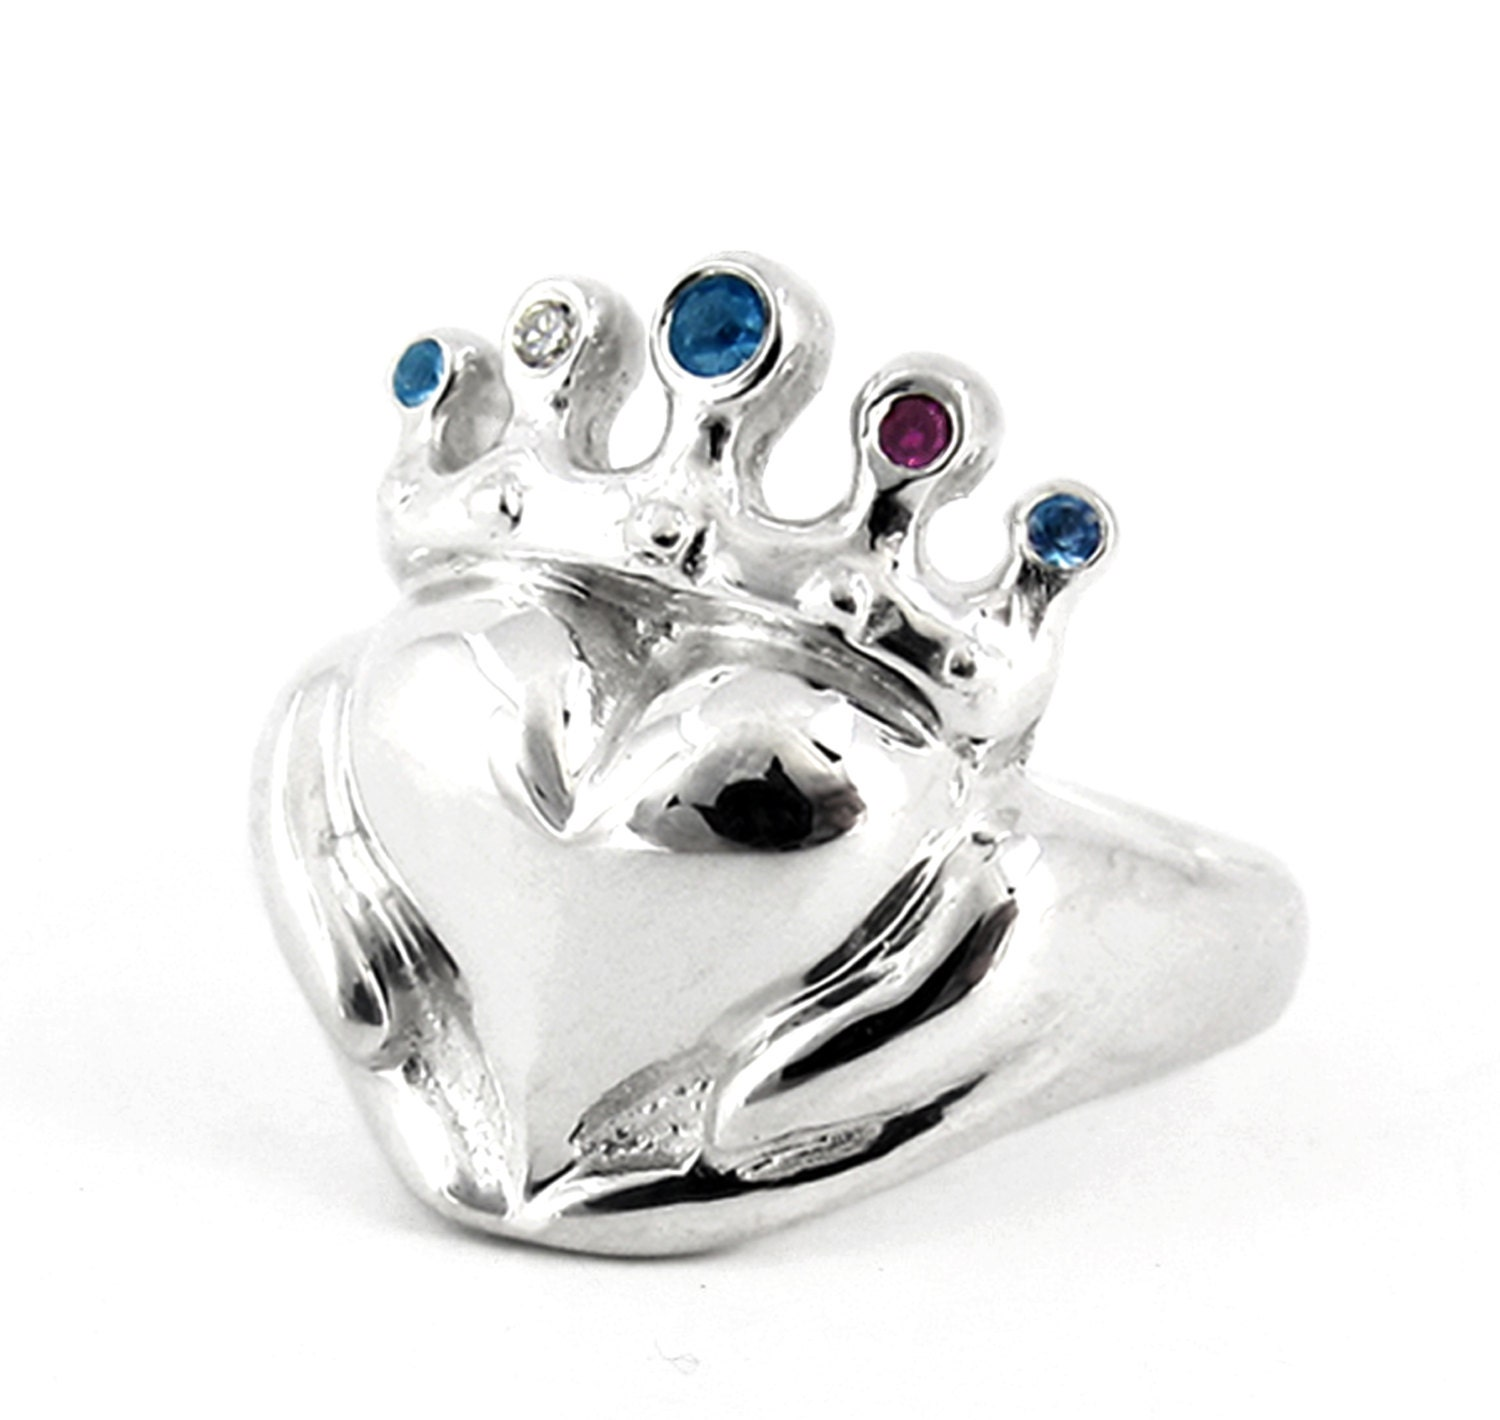 d7605c9503f03 Claddagh Family Birthstone Ring with Personalized Stones, Custom ...